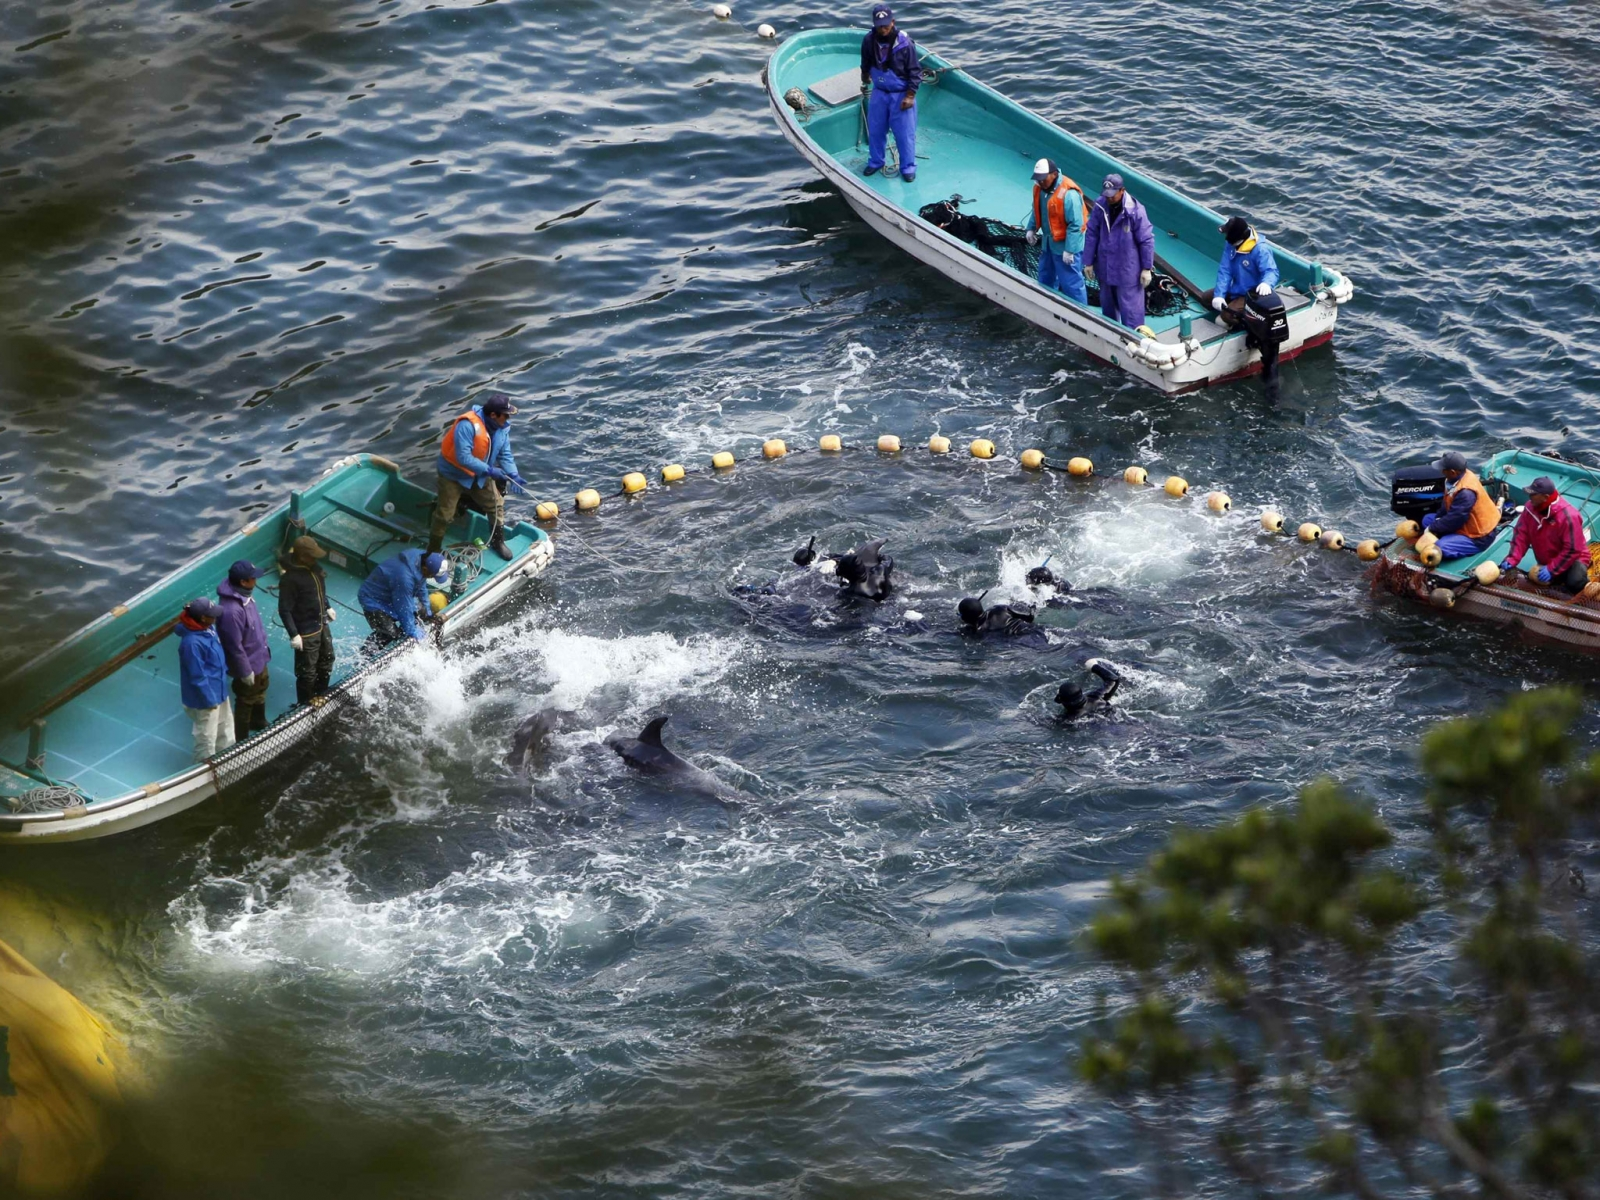 Dolphin hunting Japan